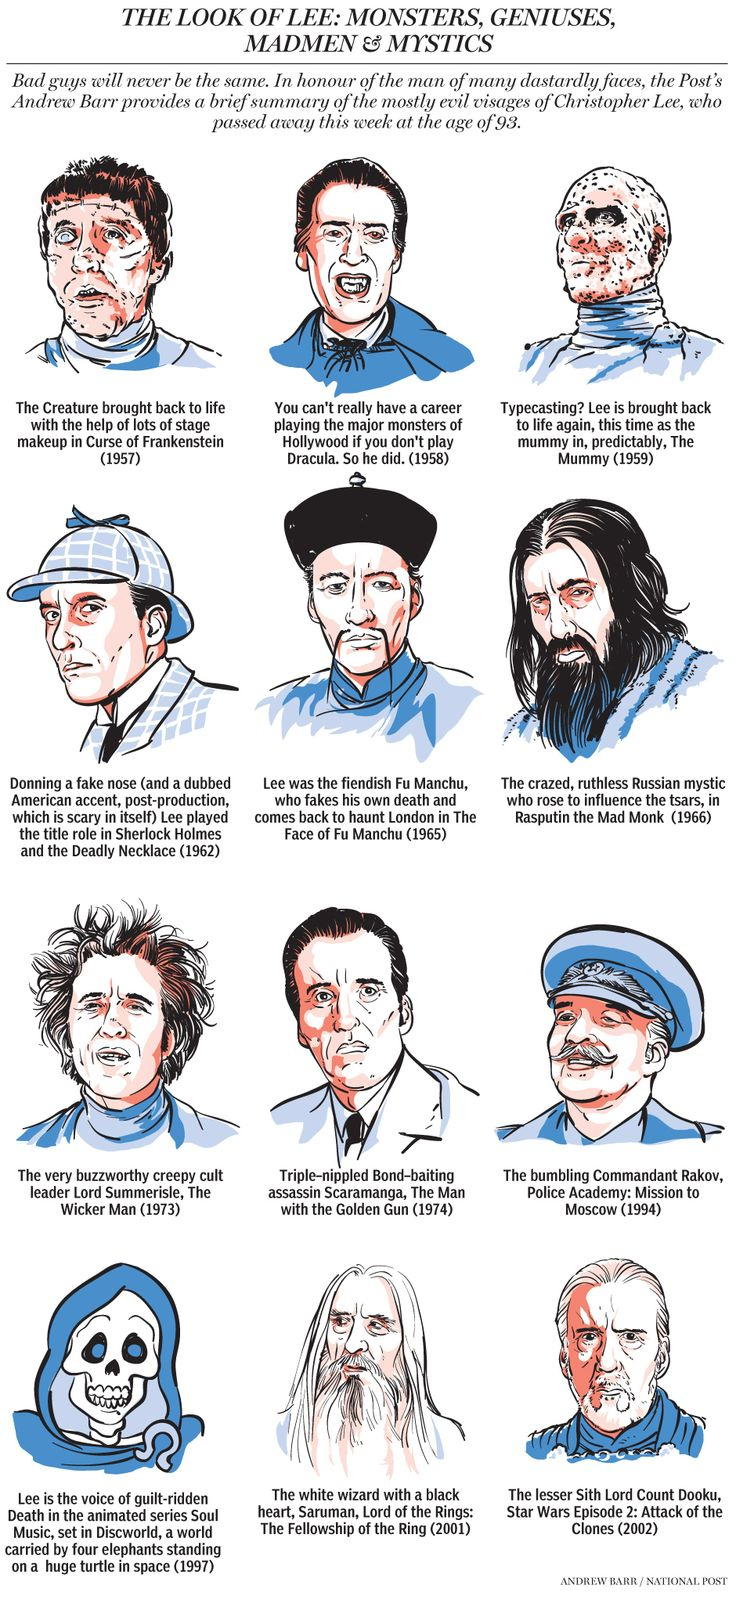 The many faces of Christoper Lee: Monster, genius, mad man and mystic - Andrew Barr / National Post Graphics